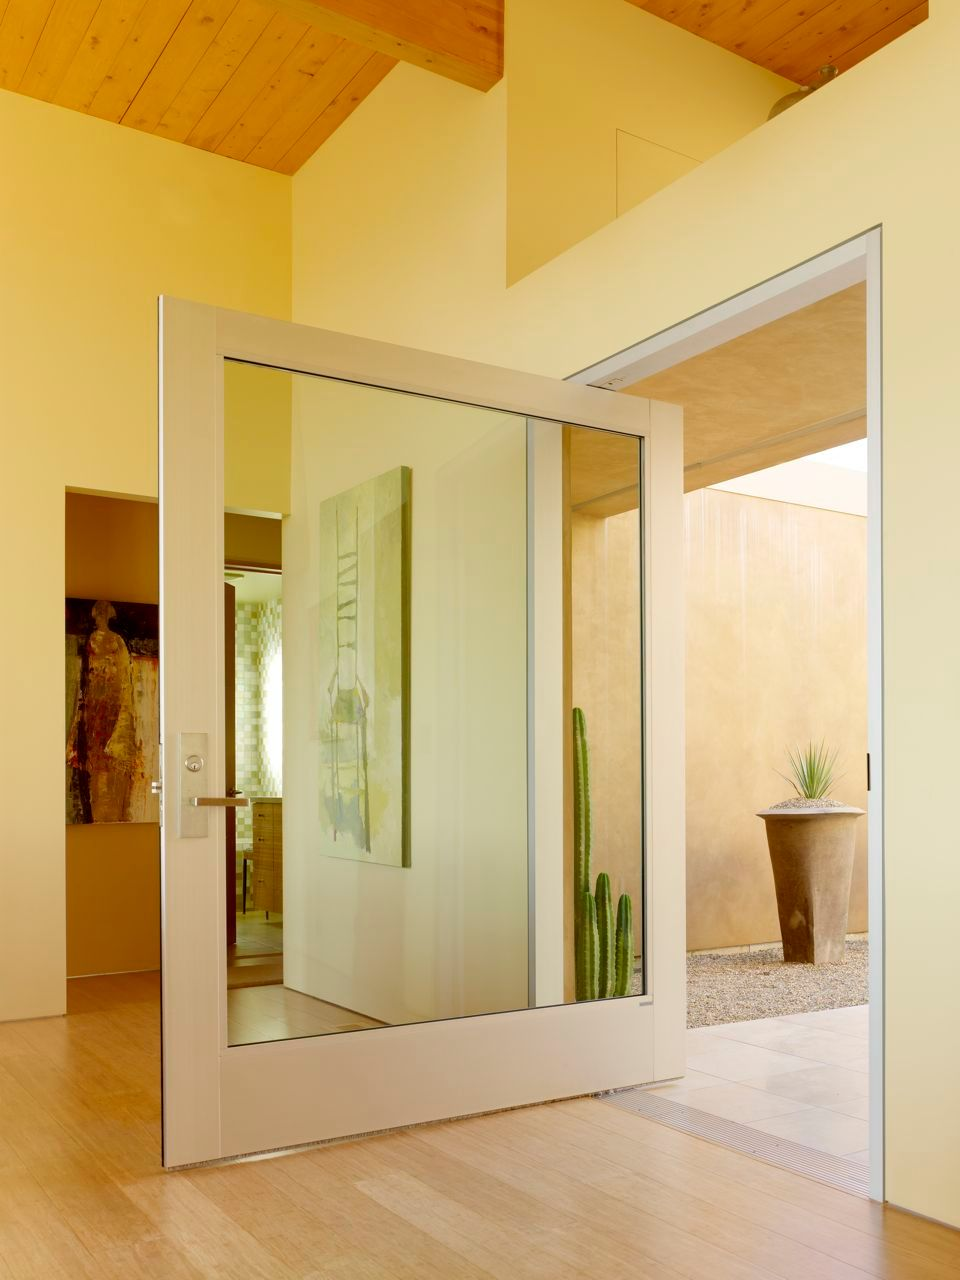 glassentry door with sidelights in modern design matched with white wall and ceramics floor